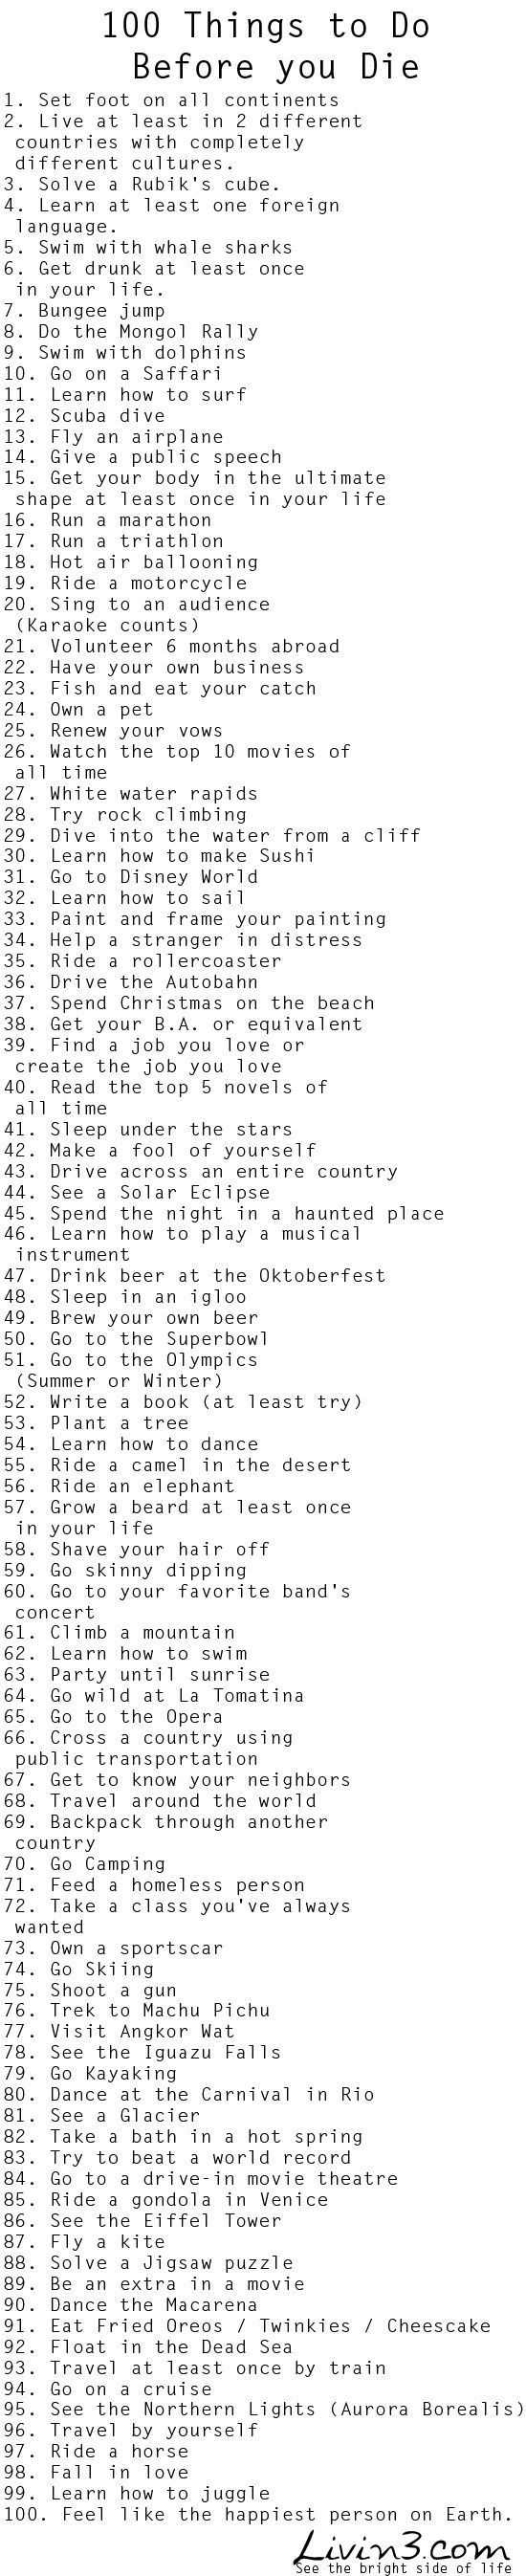 Things to do before i die bucket list live you